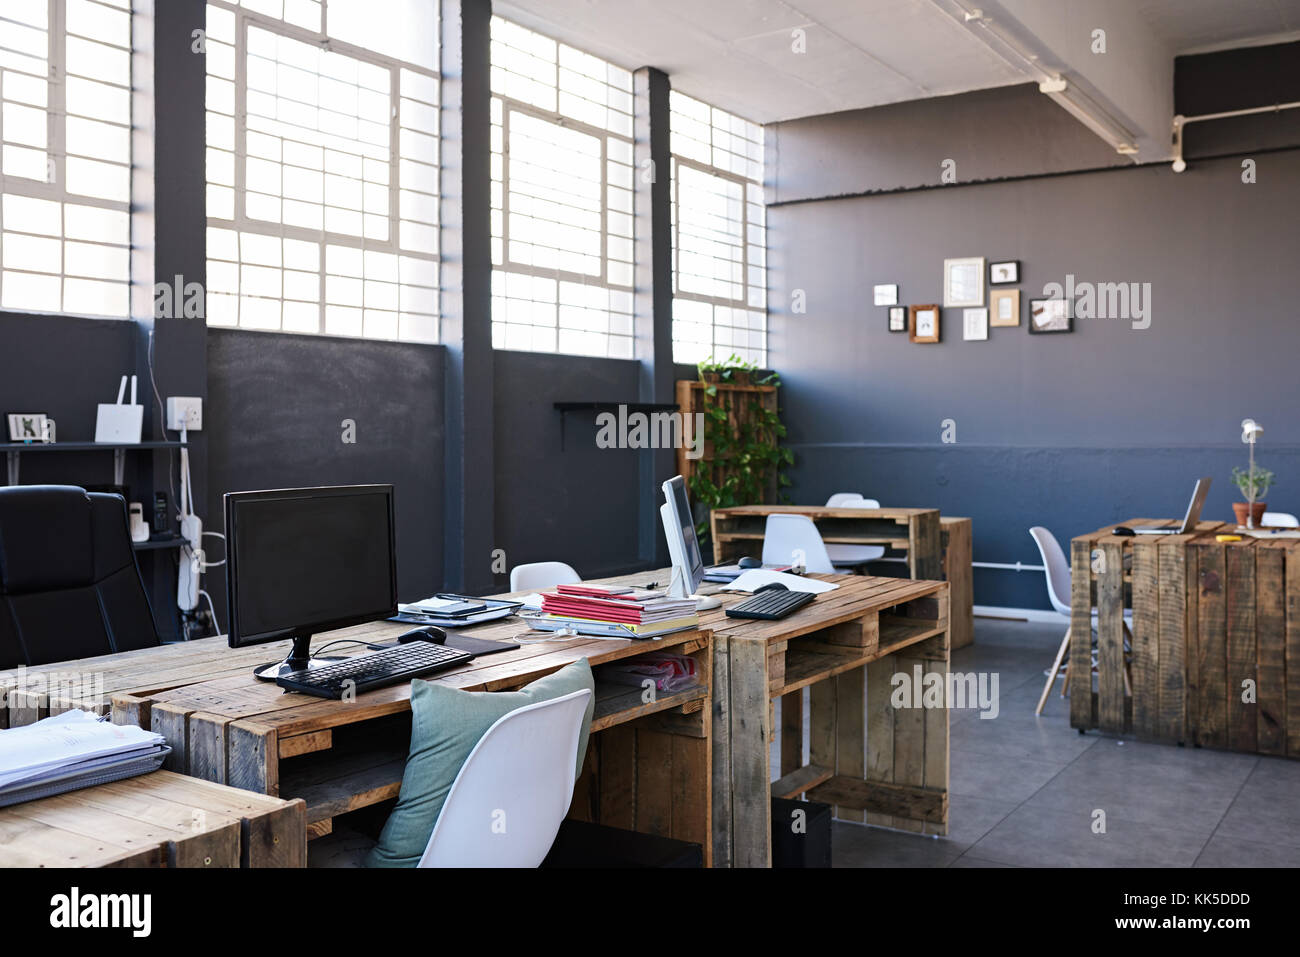 advertising agency office. Interior Of A Contemporary Office Space Without Staff - Stock Image Advertising Agency C